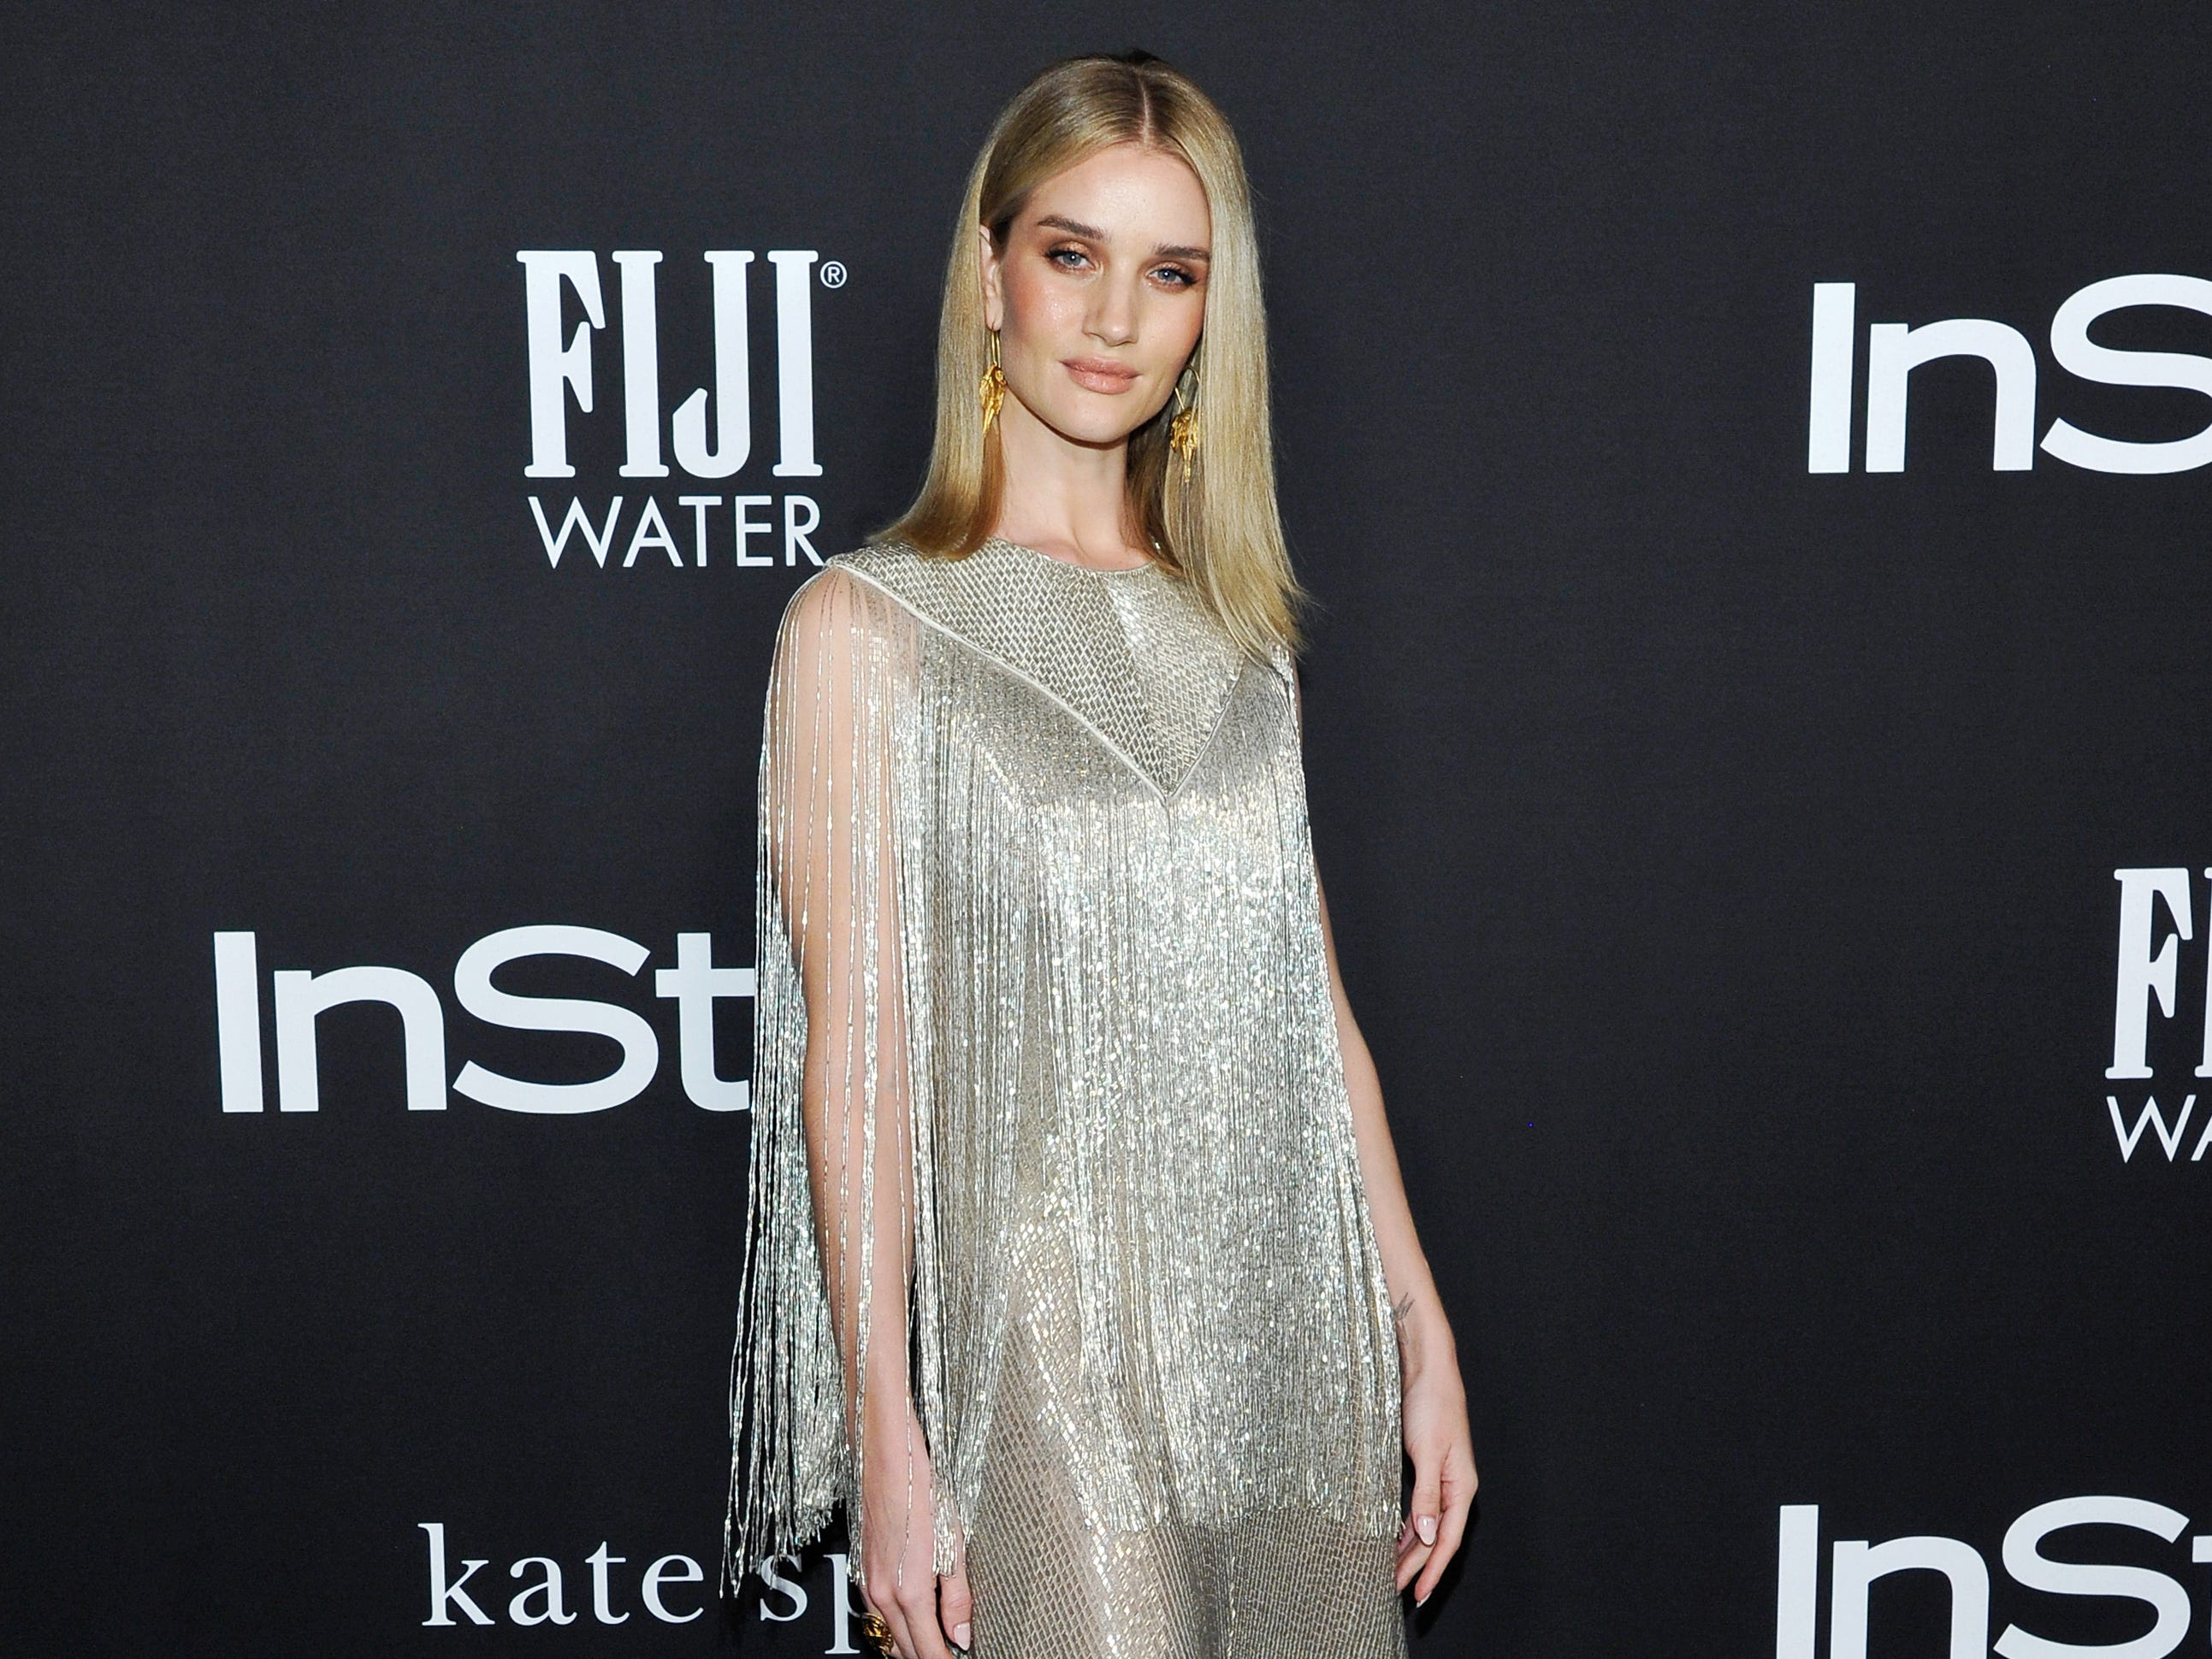 LOS ANGELES, CA - OCTOBER 22:  Rosie Huntington-Whiteley attends the 2018 InStyle Awards with Fiji Water on October 22, 2018 in Los Angeles, California.  (Photo by John Sciulli/Getty Images for FIJI Water) ORG XMIT: 775244144 ORIG FILE ID: 1052785976